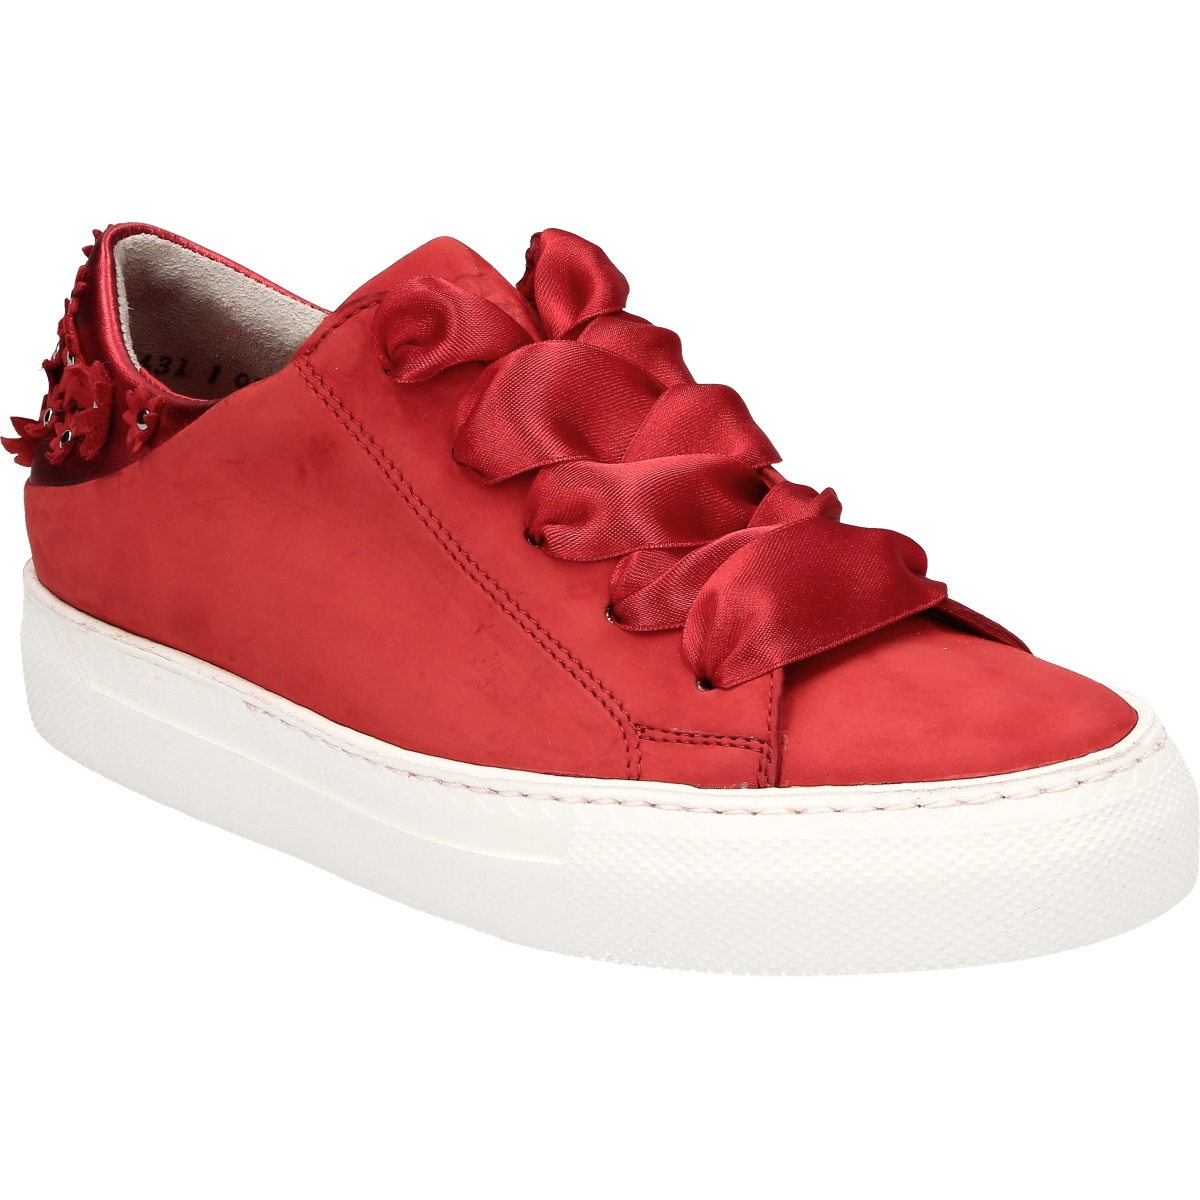 Lace ups in red 4626 034 Buy in Paul Green Online Shop